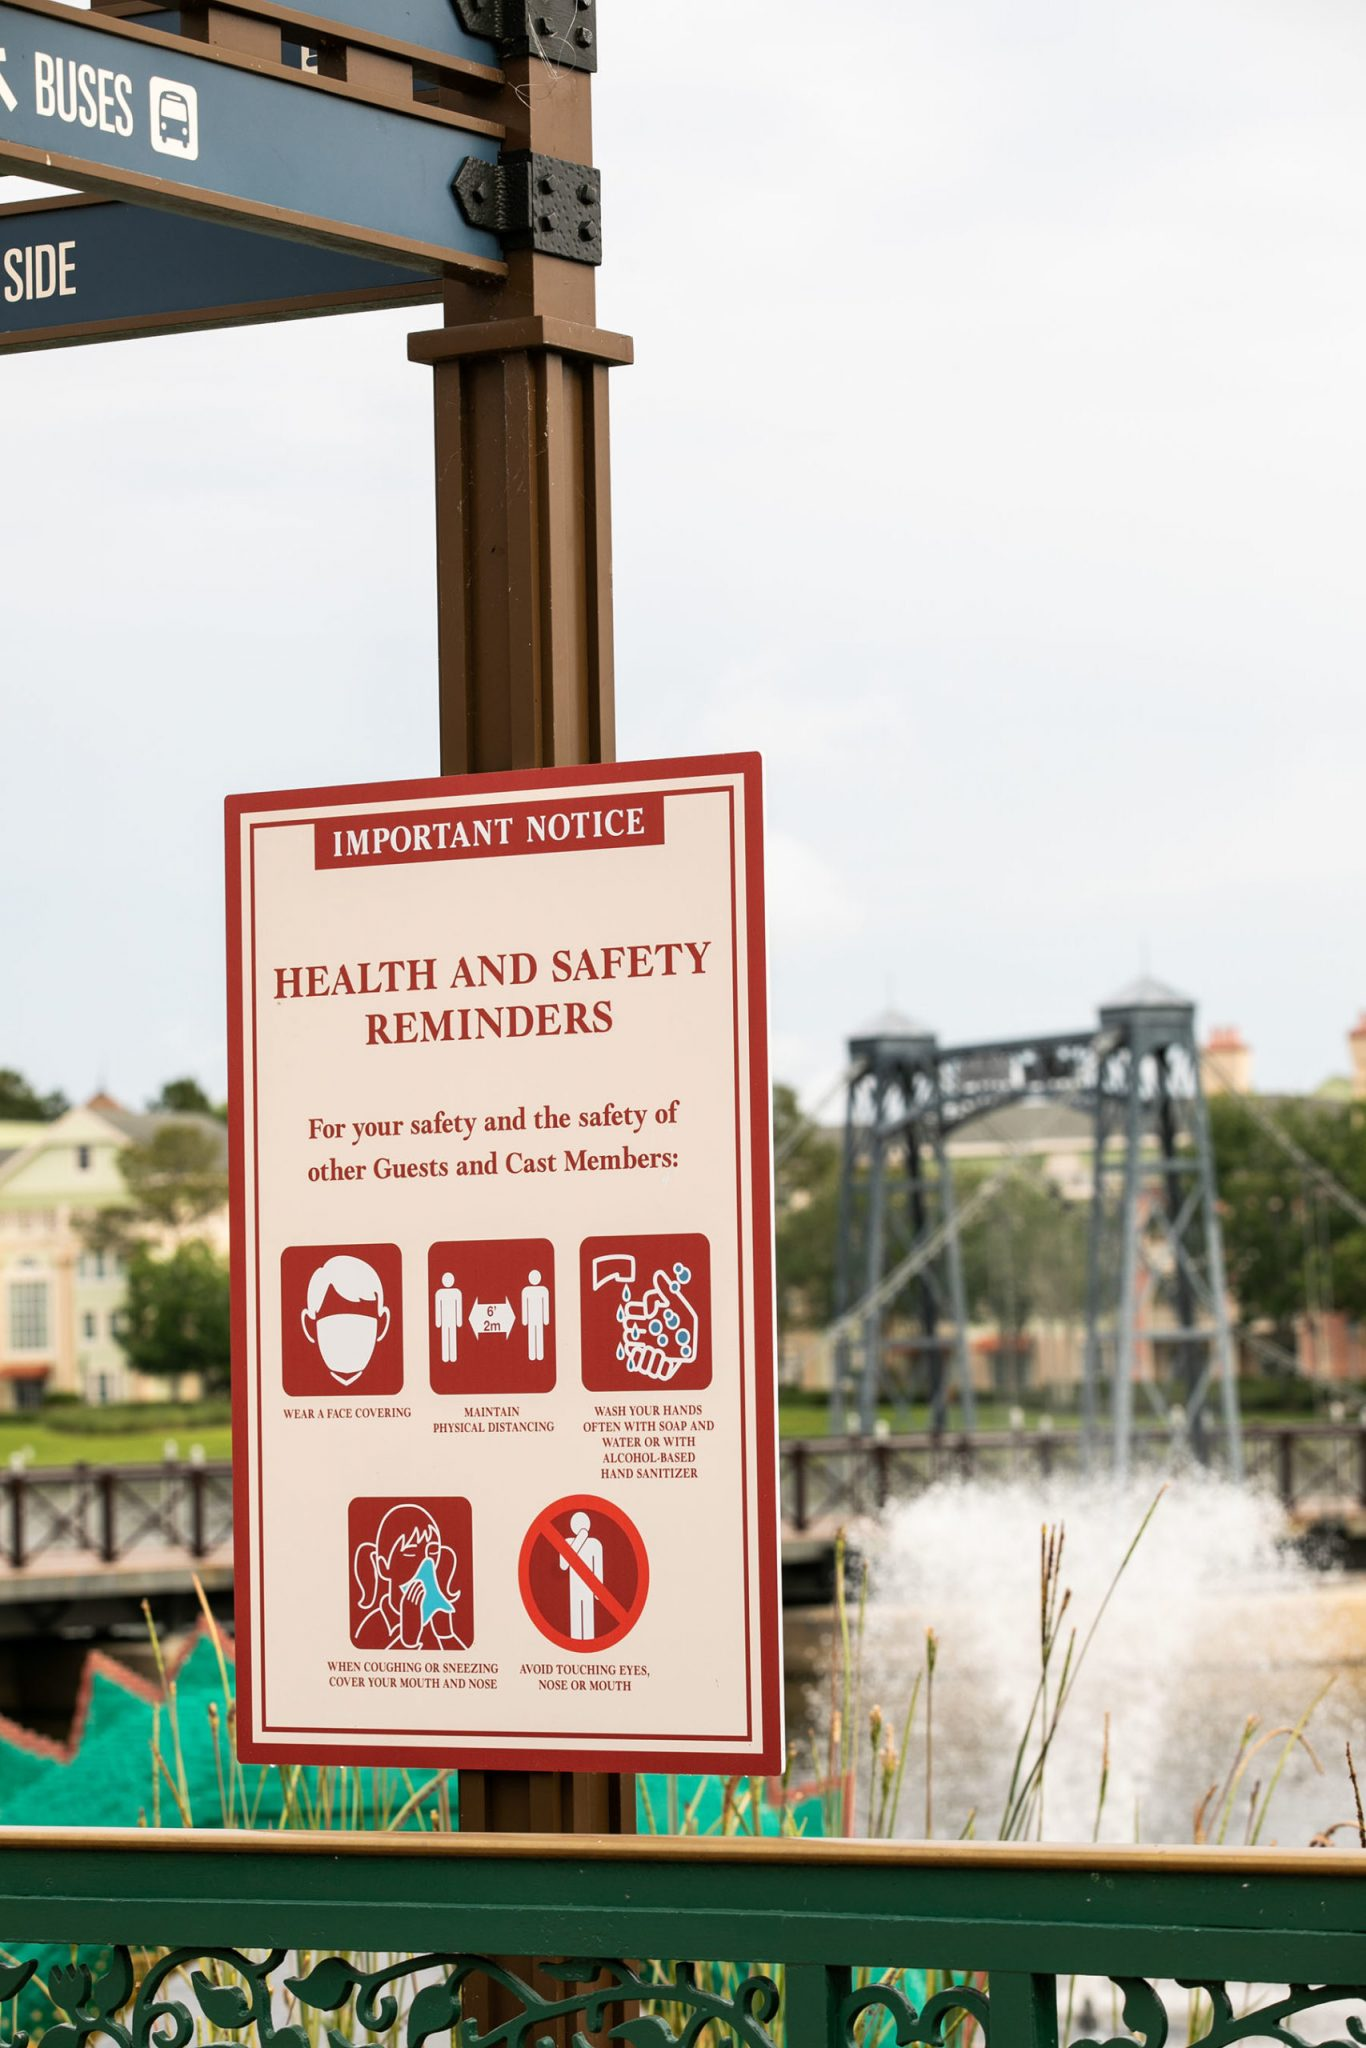 Walter Disney World and COVID-19: How to Stay Safe When Visiting Disney World When They Open the Park (Which Is Happening Really Soon!) featured by top US Disney blogger, Marcie and the Mouse